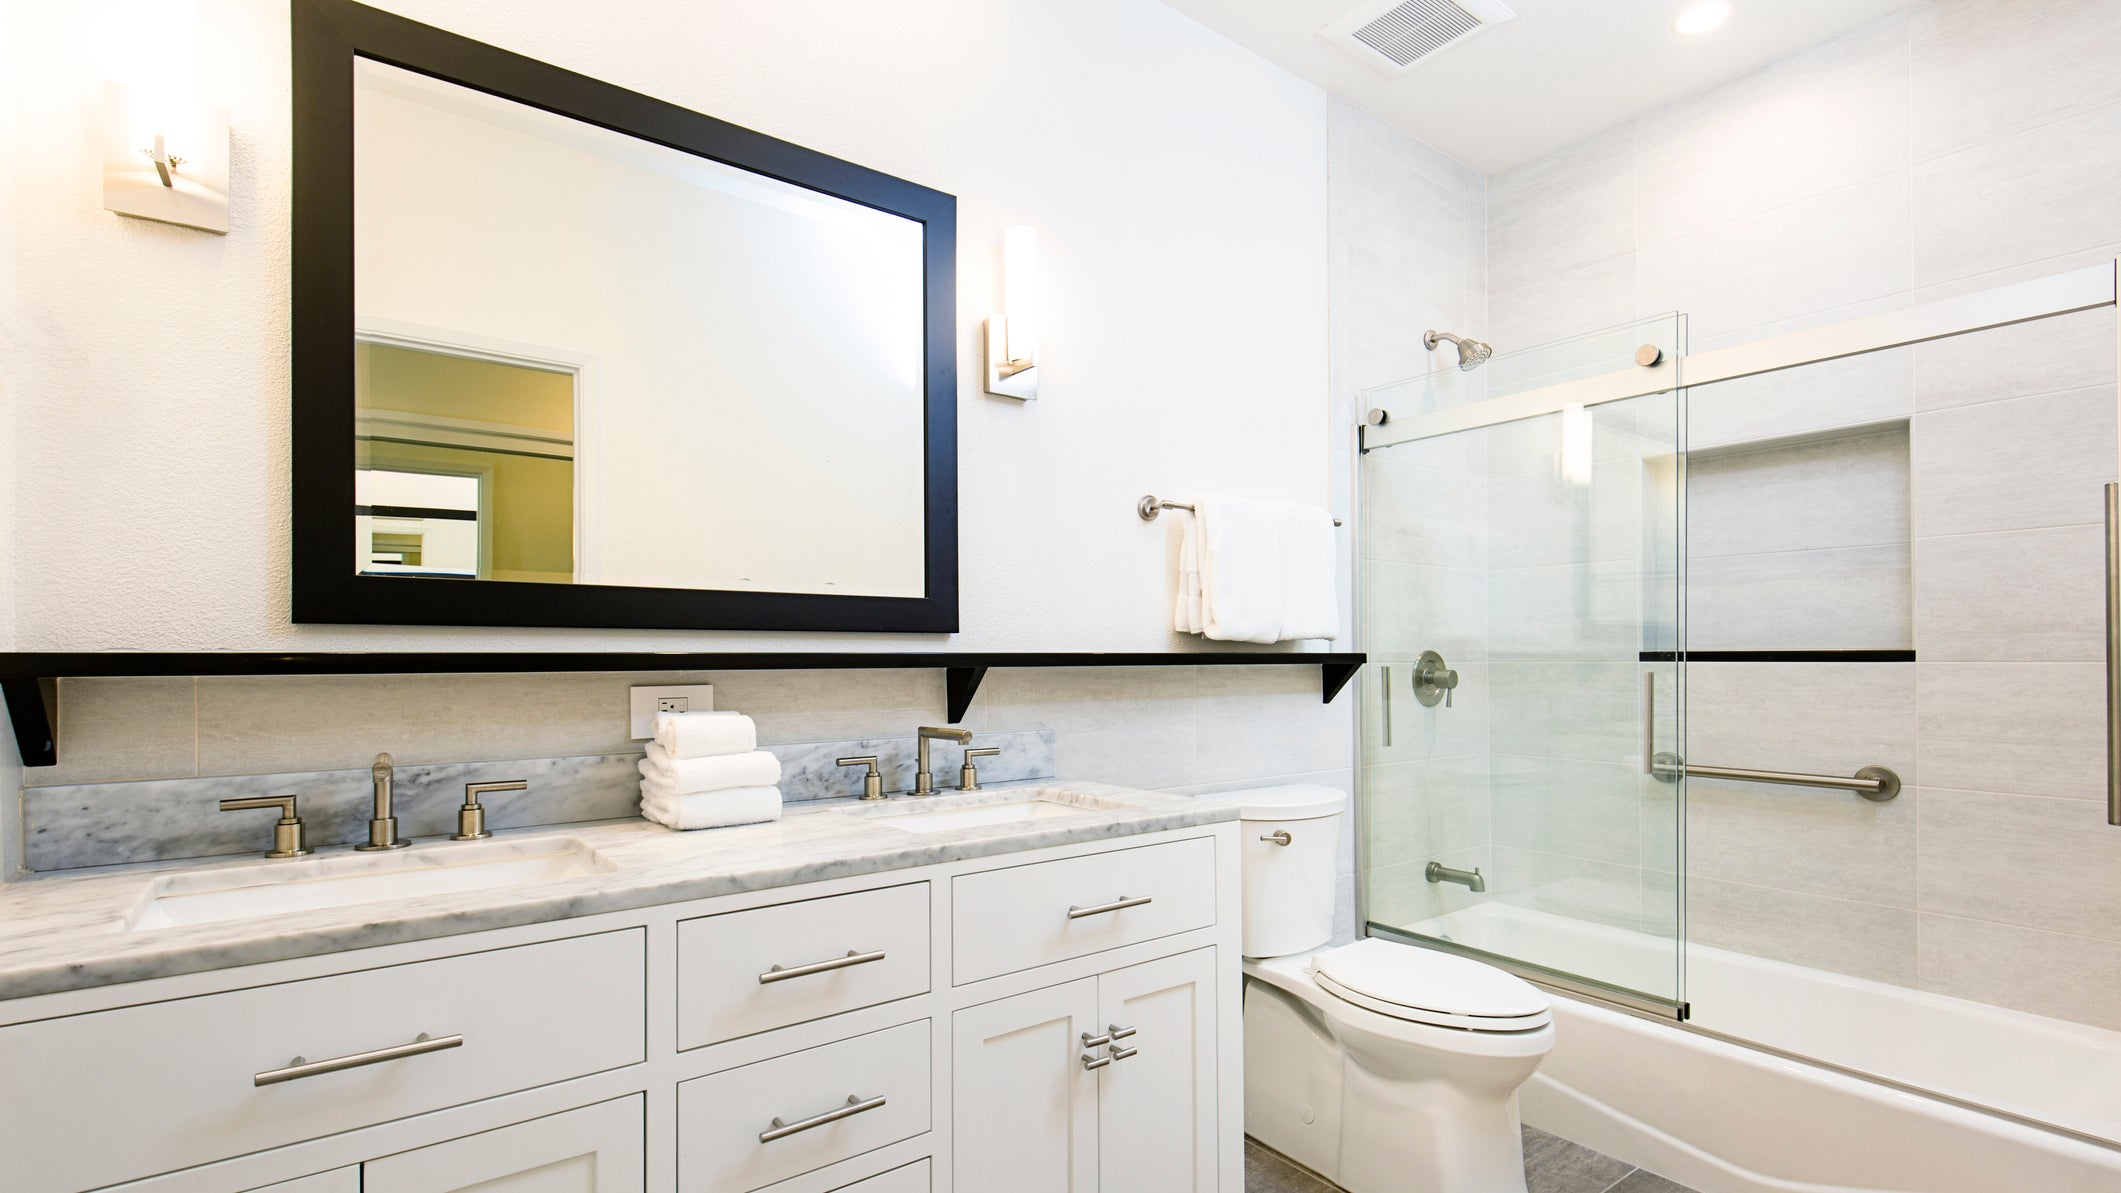 How Much Does A Bathroom Remodel Cost Millionacres